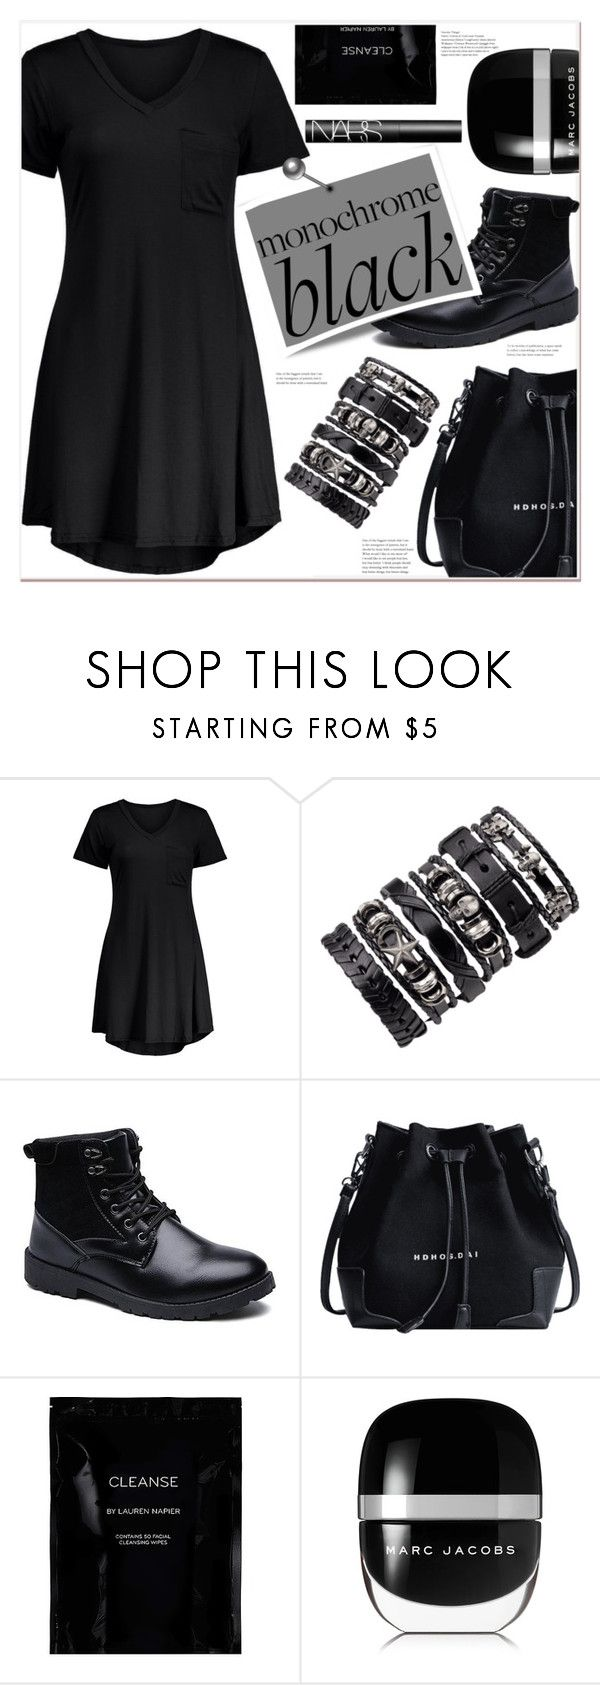 """""""black"""" by mycherryblossom ❤ liked on Polyvore featuring Cleanse by Lauren Napier, Marc Jacobs and NARS Cosmetics"""